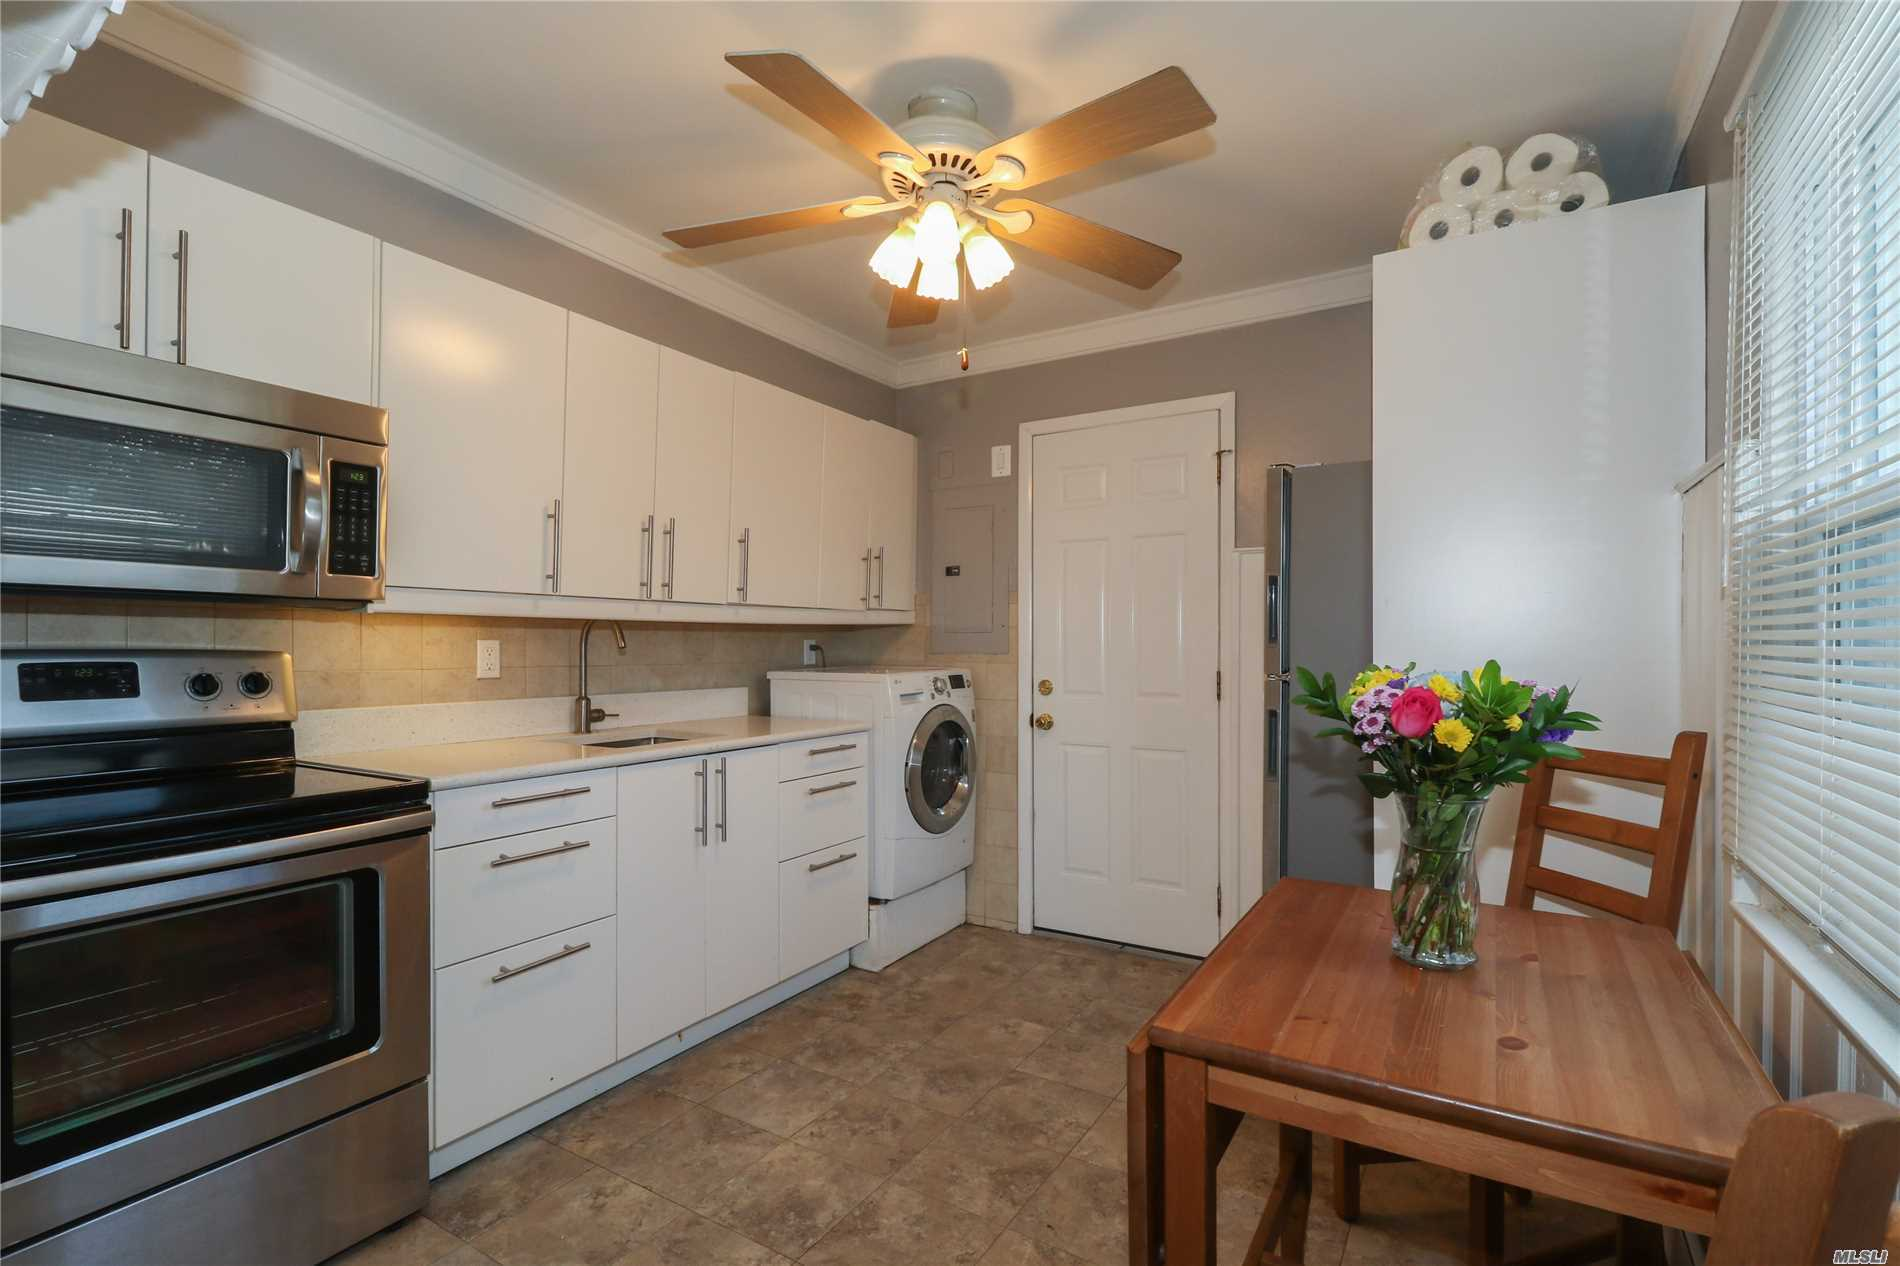 Mint Levitt Corner Cape W/ Updated Eat-In-Kitchen W/ Washer/Dryer Combo, Living Rm, Dining Rm, Master Bdrm, Updated Full Bath, & New Boiler All On 1st Floor. 2nd Floor Offers 2 Bdrms W/ Nice Size Closets. Newly Painted, New Laminate Wood Flrs Throughout, New Roof & Siding, Access To Yard, Det Garage, & Pvt Driveway. (1st & Last Month Rent, 1 Month Broker Fee, Security: $1000 Due At Lease Signing By Tenant) All Prospective Tenants Must Be Screened By The National Tenant Network Link.